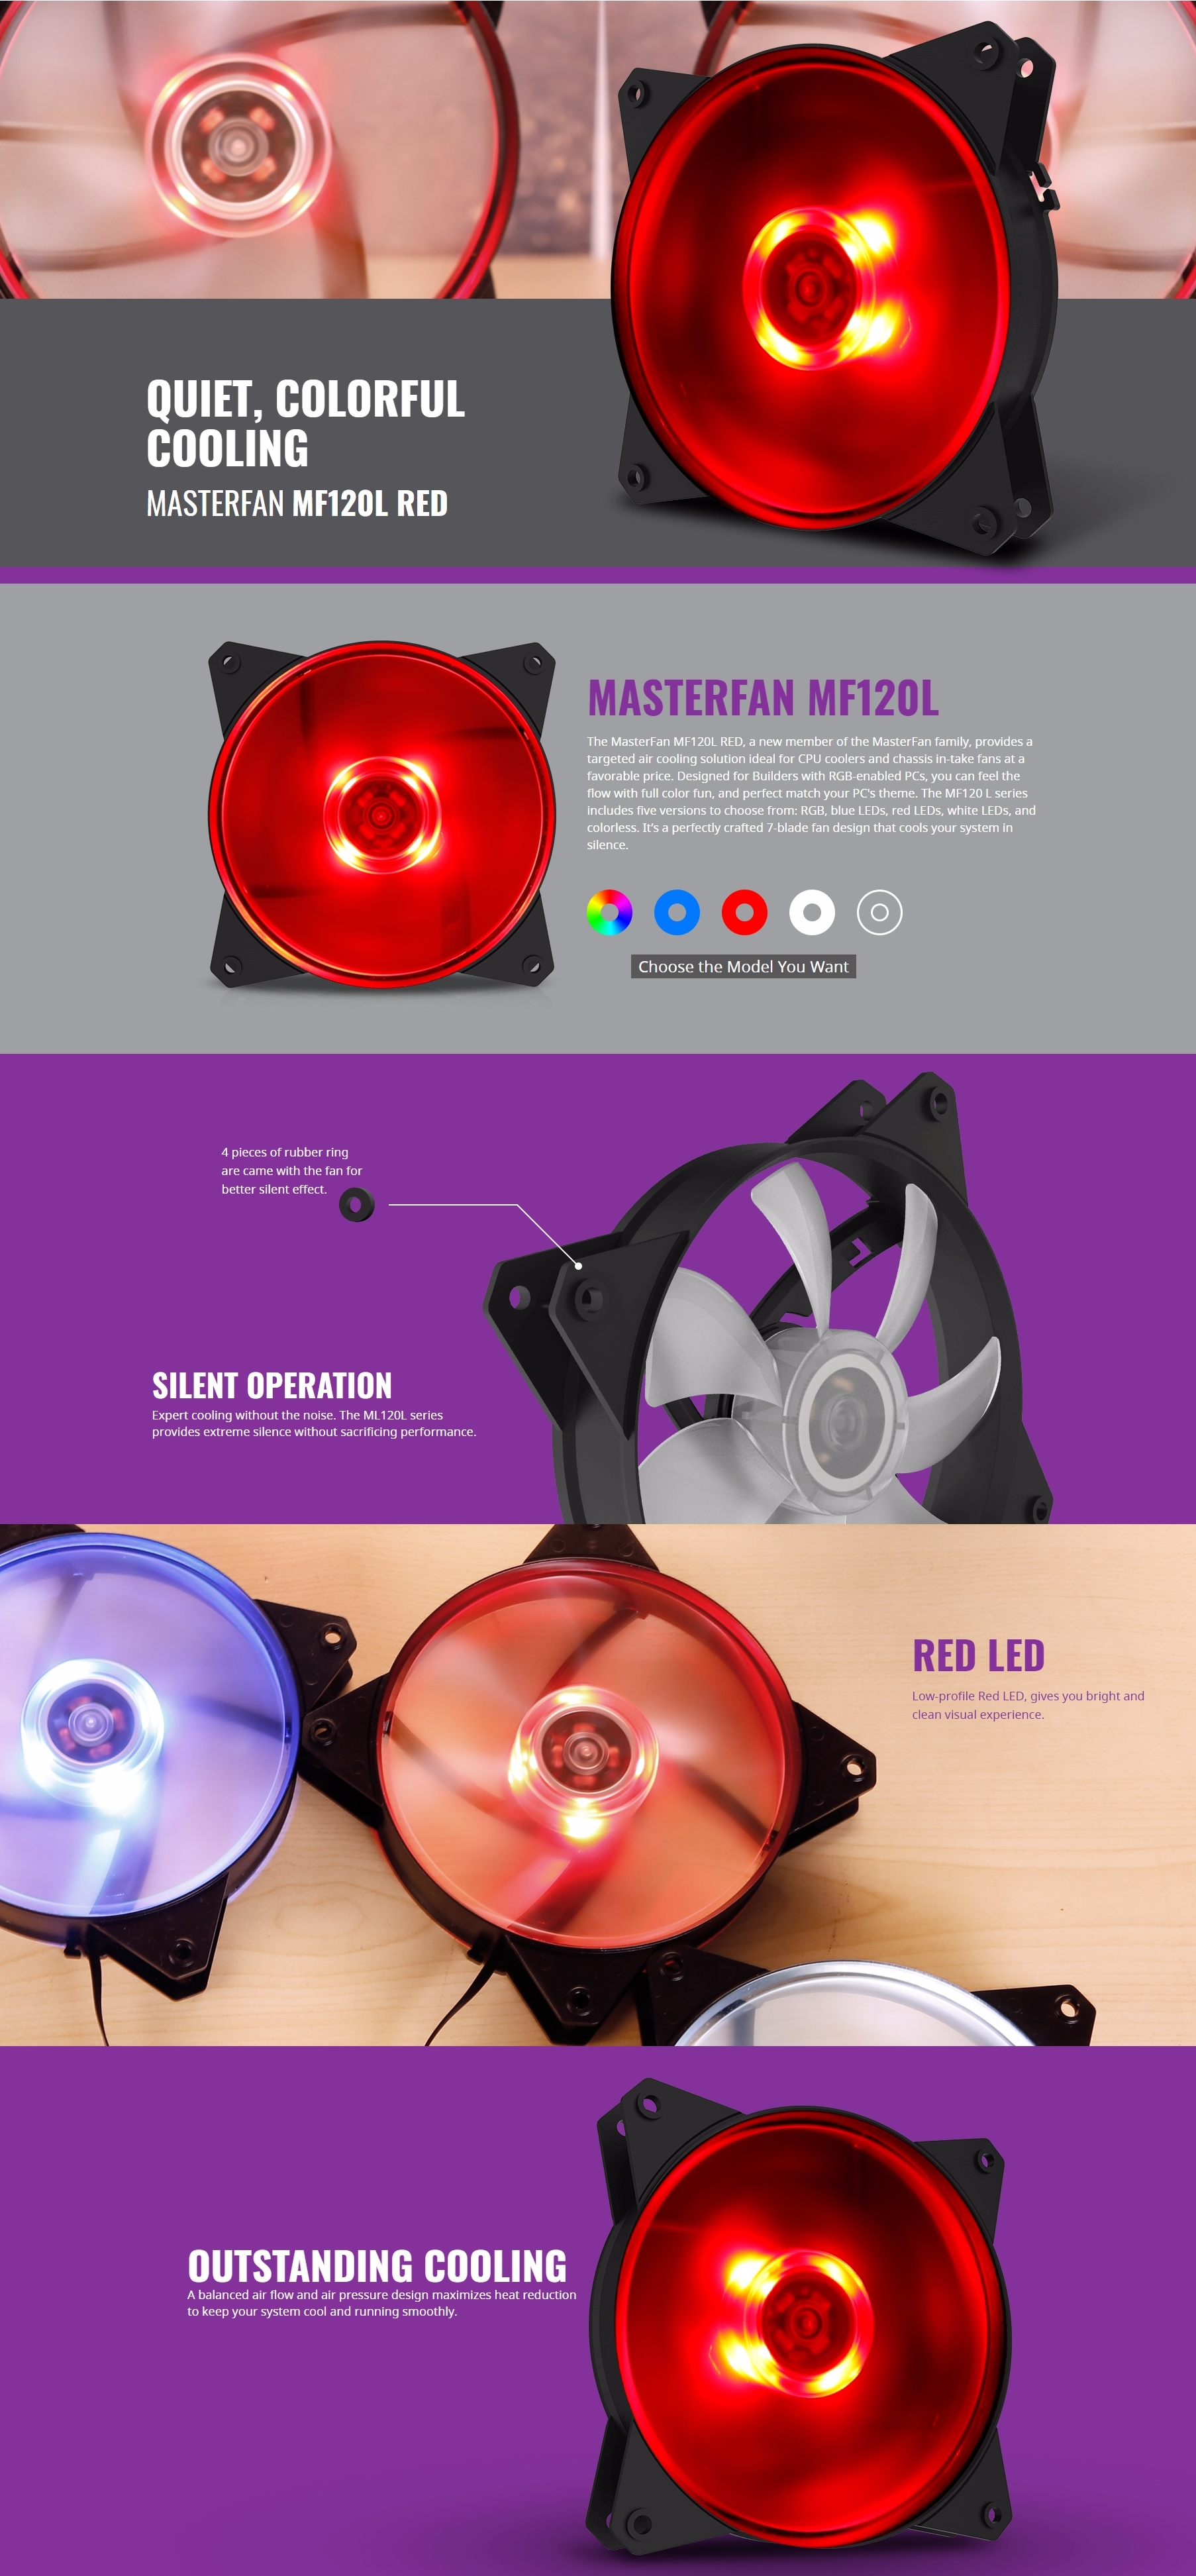 A large marketing image providing additional information about the product Cooler Master MasterFan Lite MF120L 120mm Red LED Fan - Additional alt info not provided